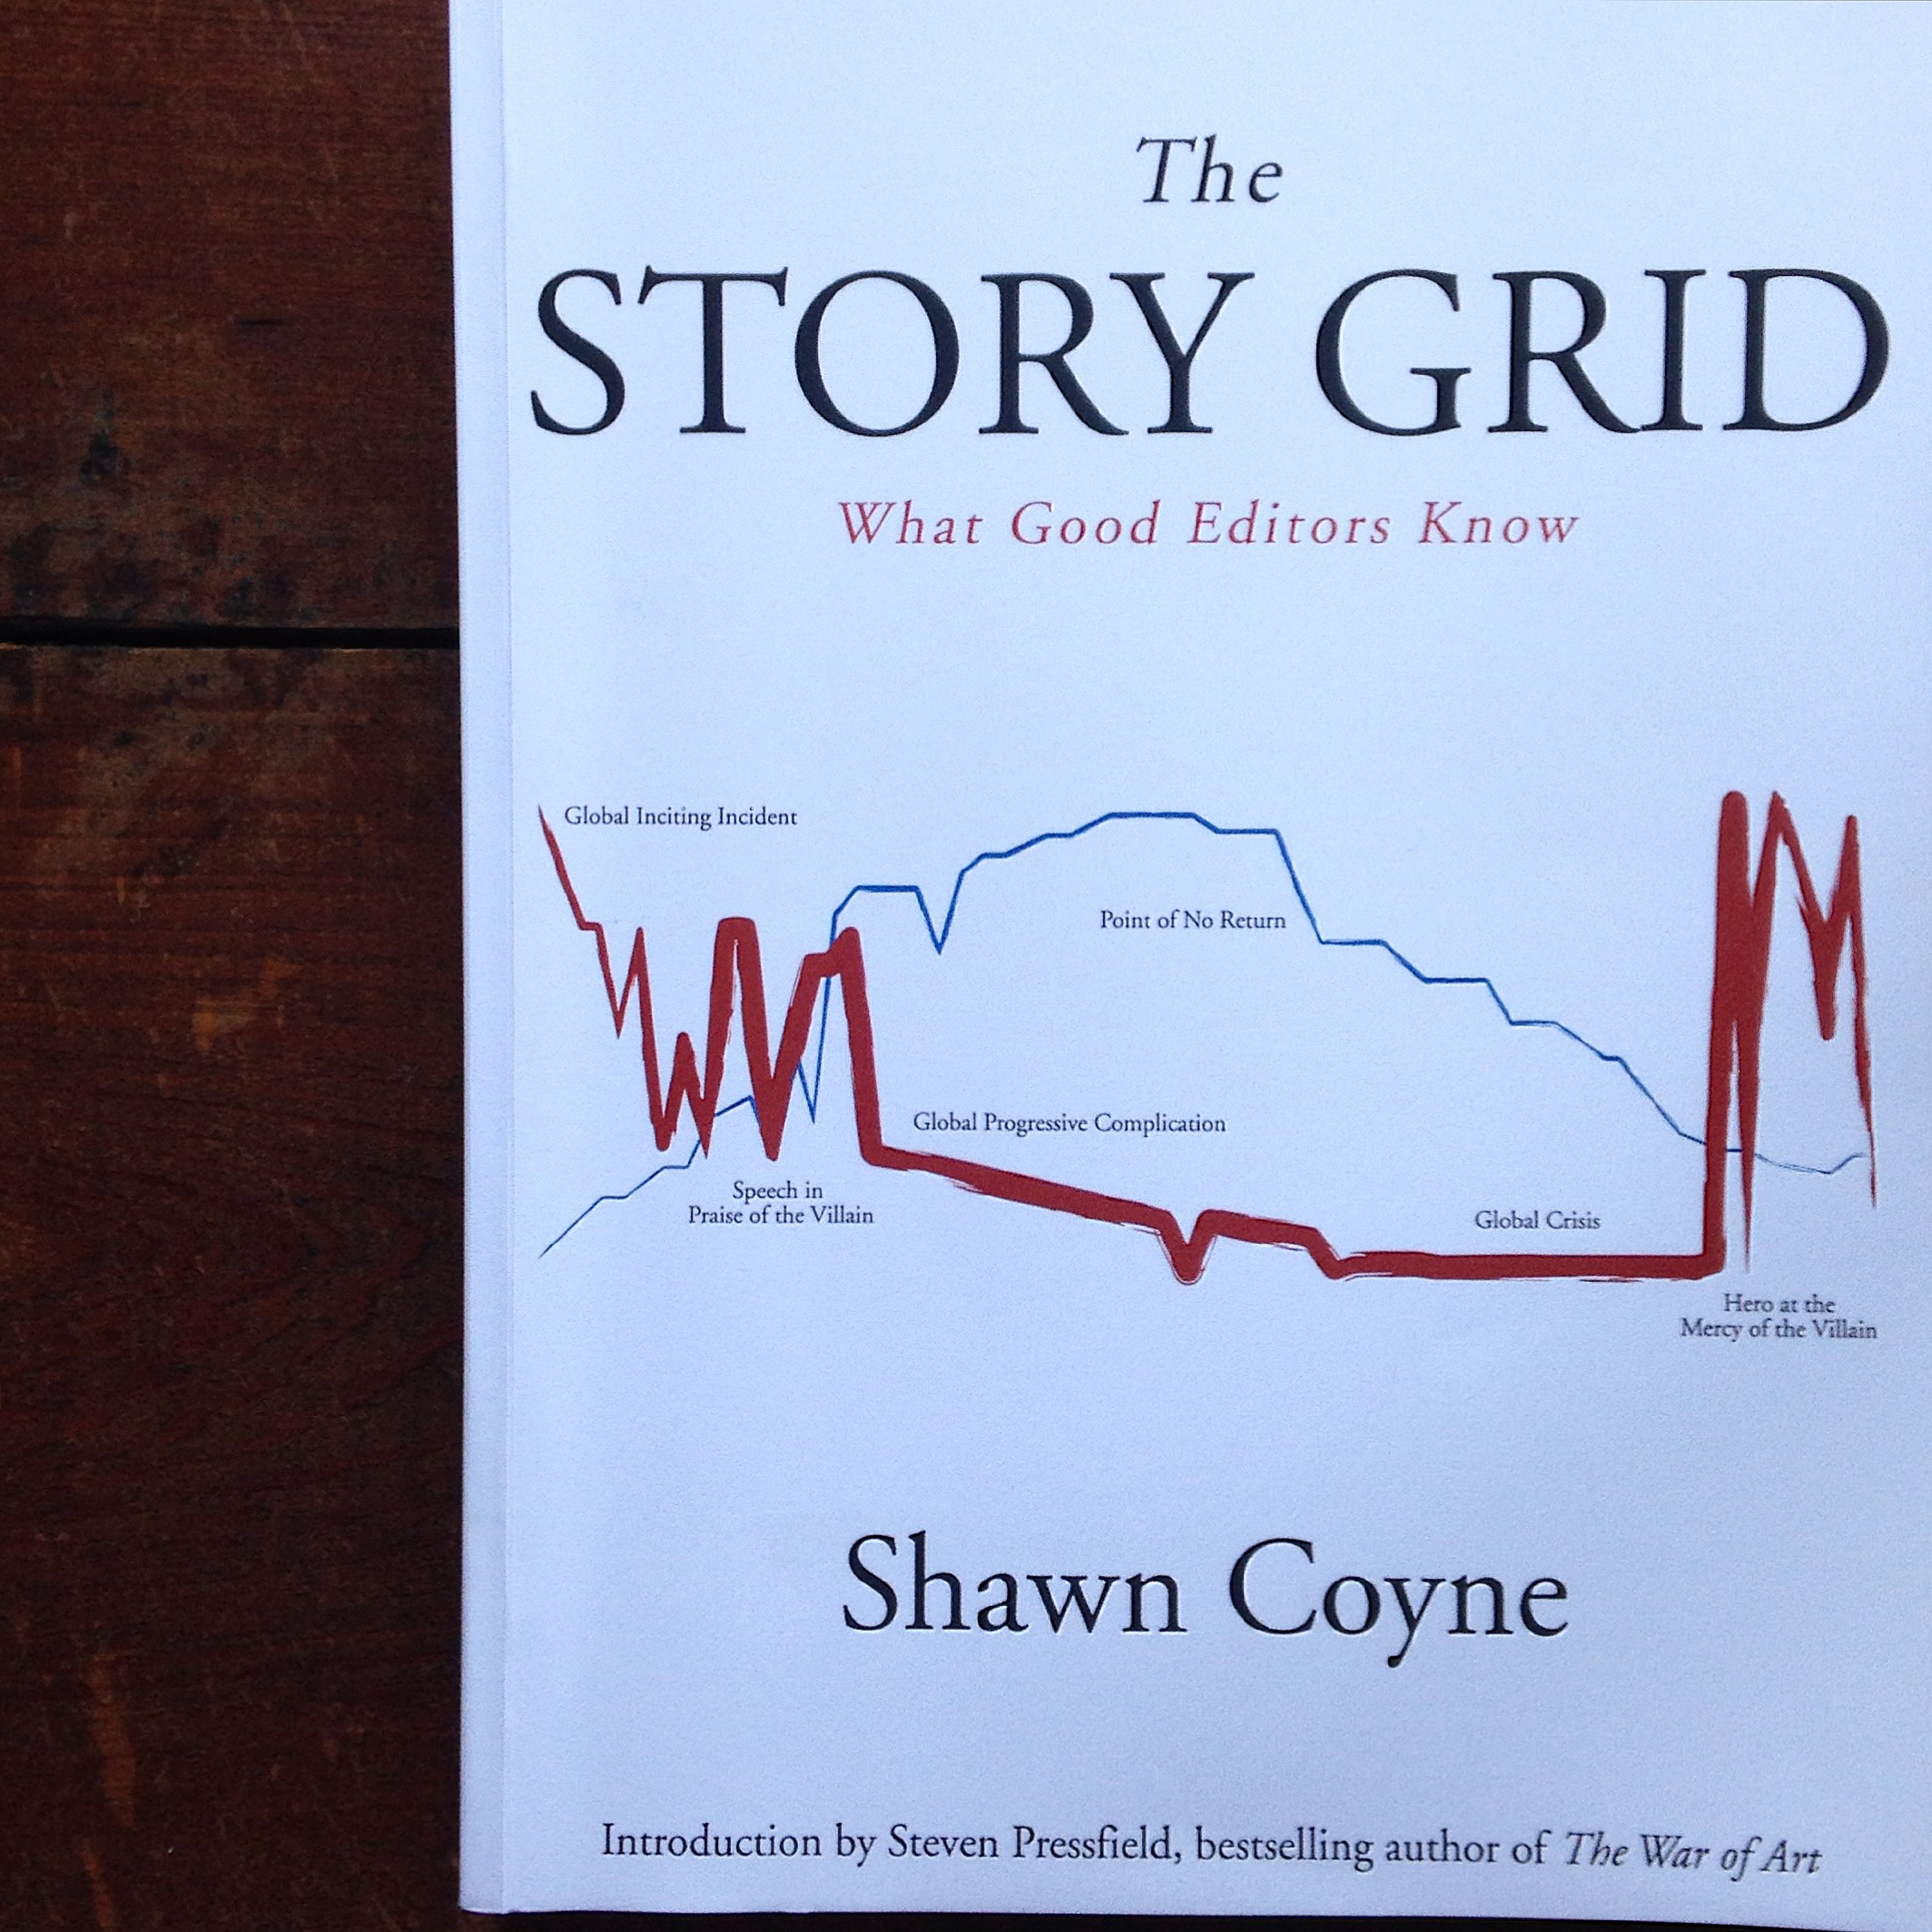 The one-stop shop for all your editing needs!! Use this book to diagnose allllll your story problems. (And then fix 'em!)   lucyflint.com